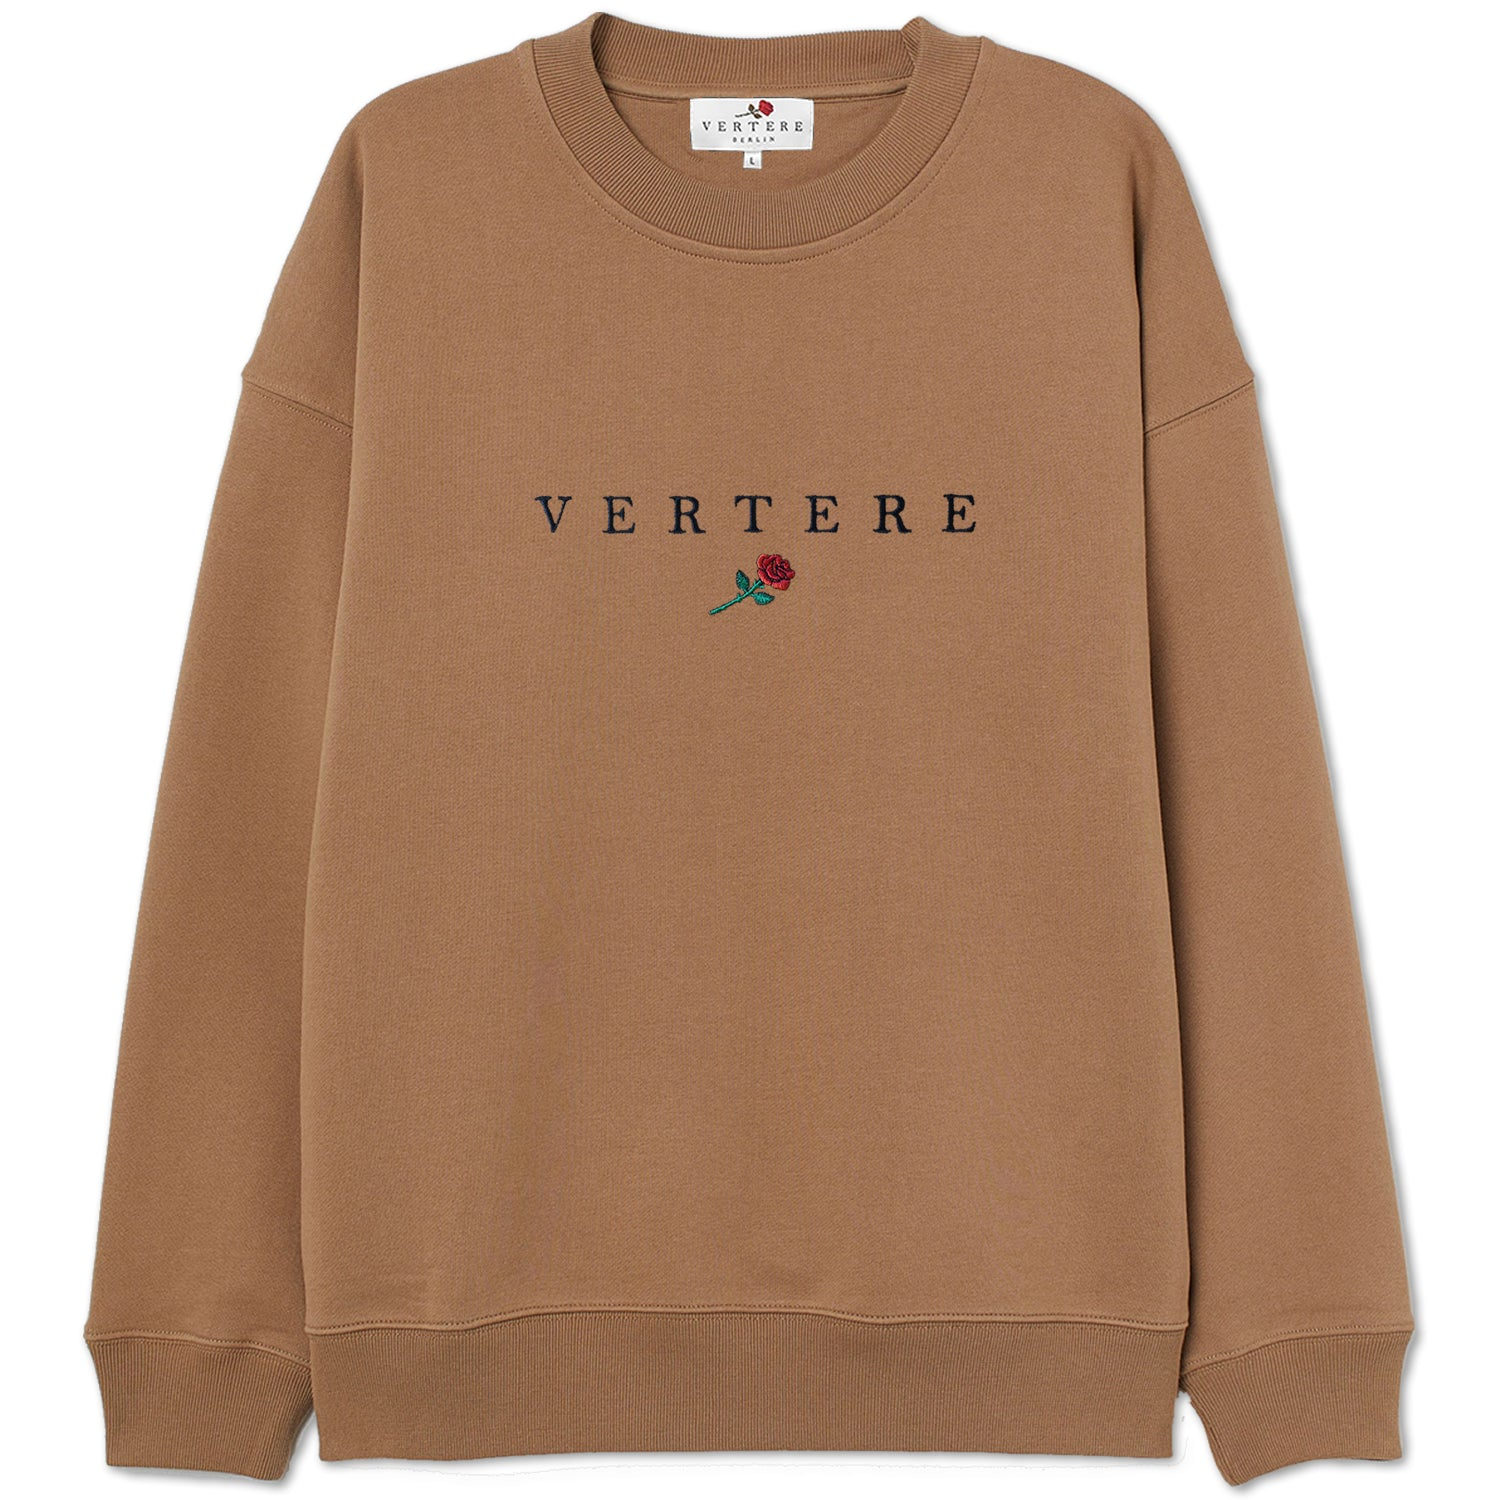 VERTERE ROSE SWEATER - CAMEL